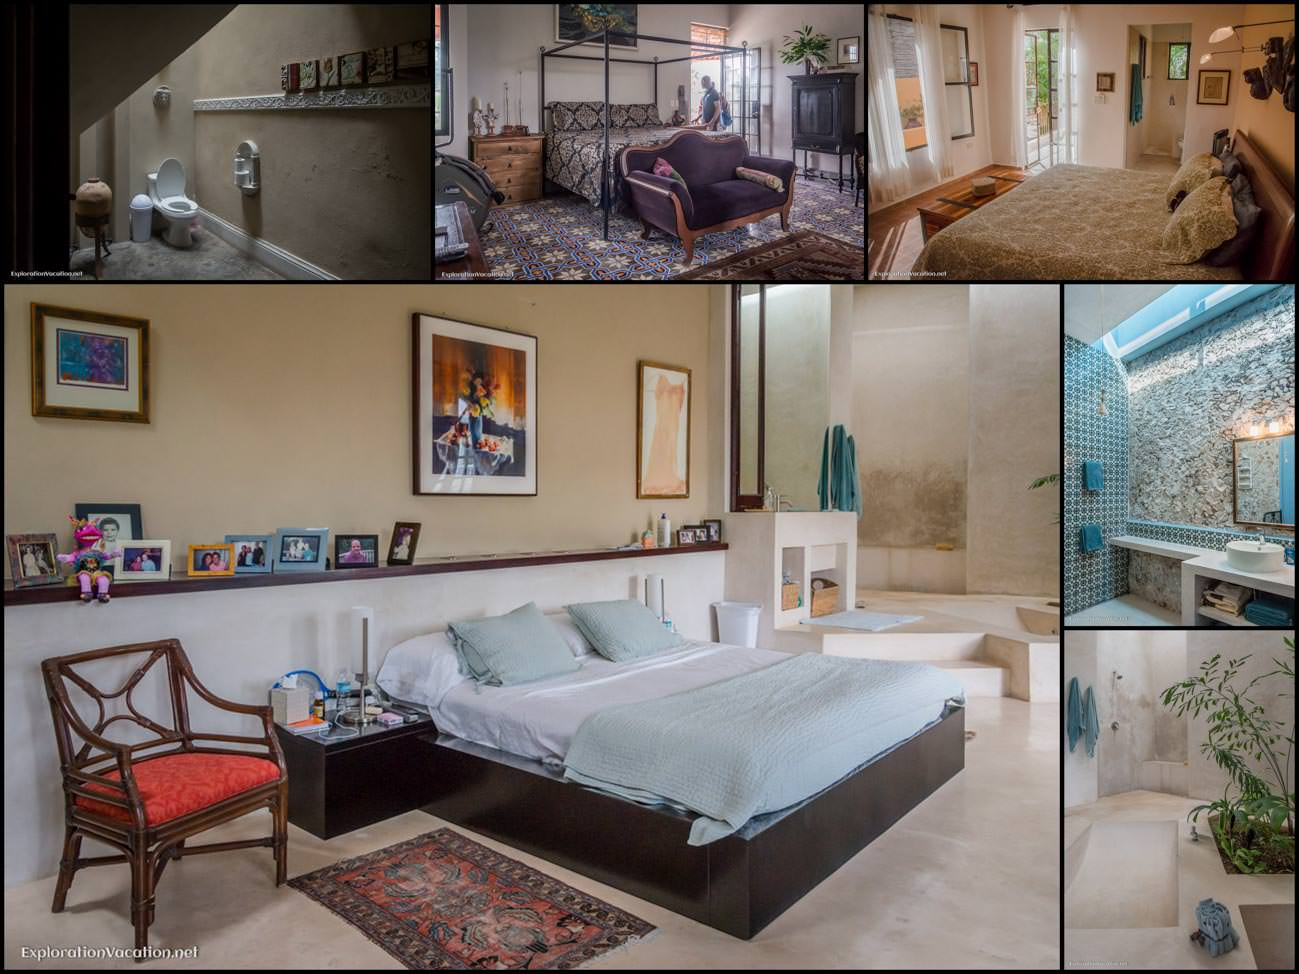 Merida Mexico house tour - 16 bed and bathrooms - ExplorationVacation